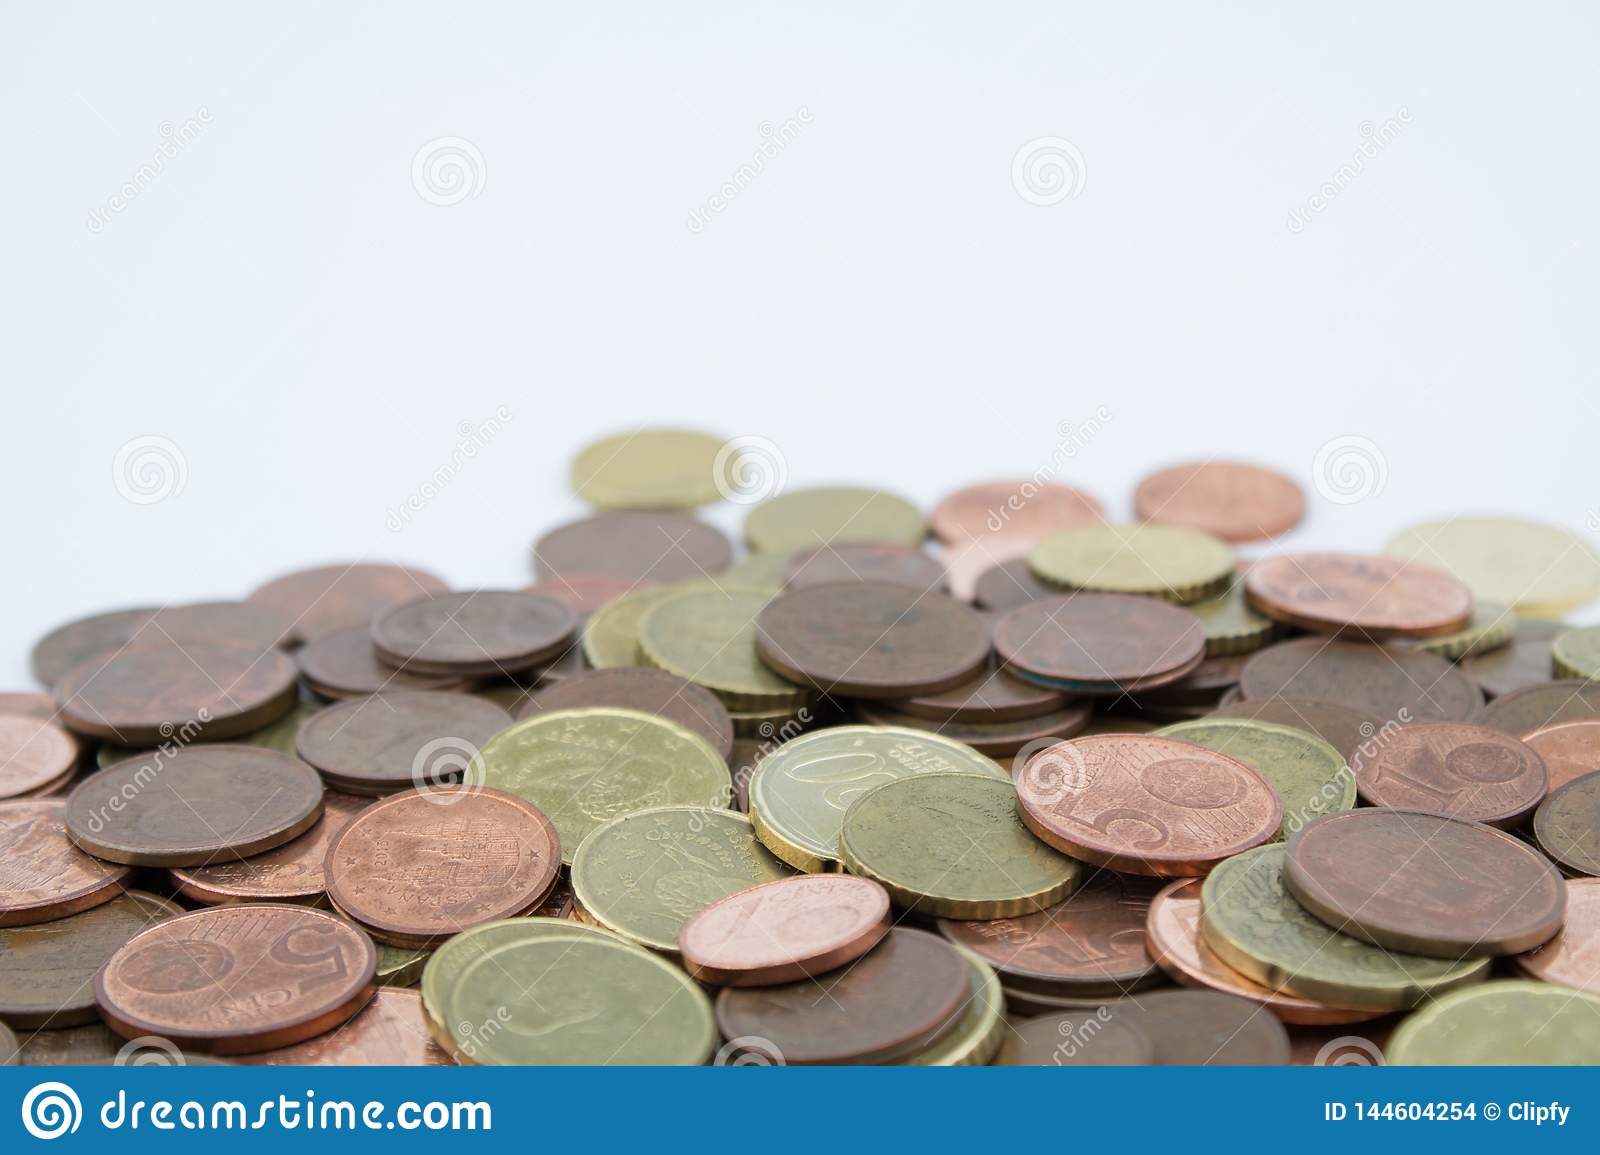 Coins of euro cents of small value on white background